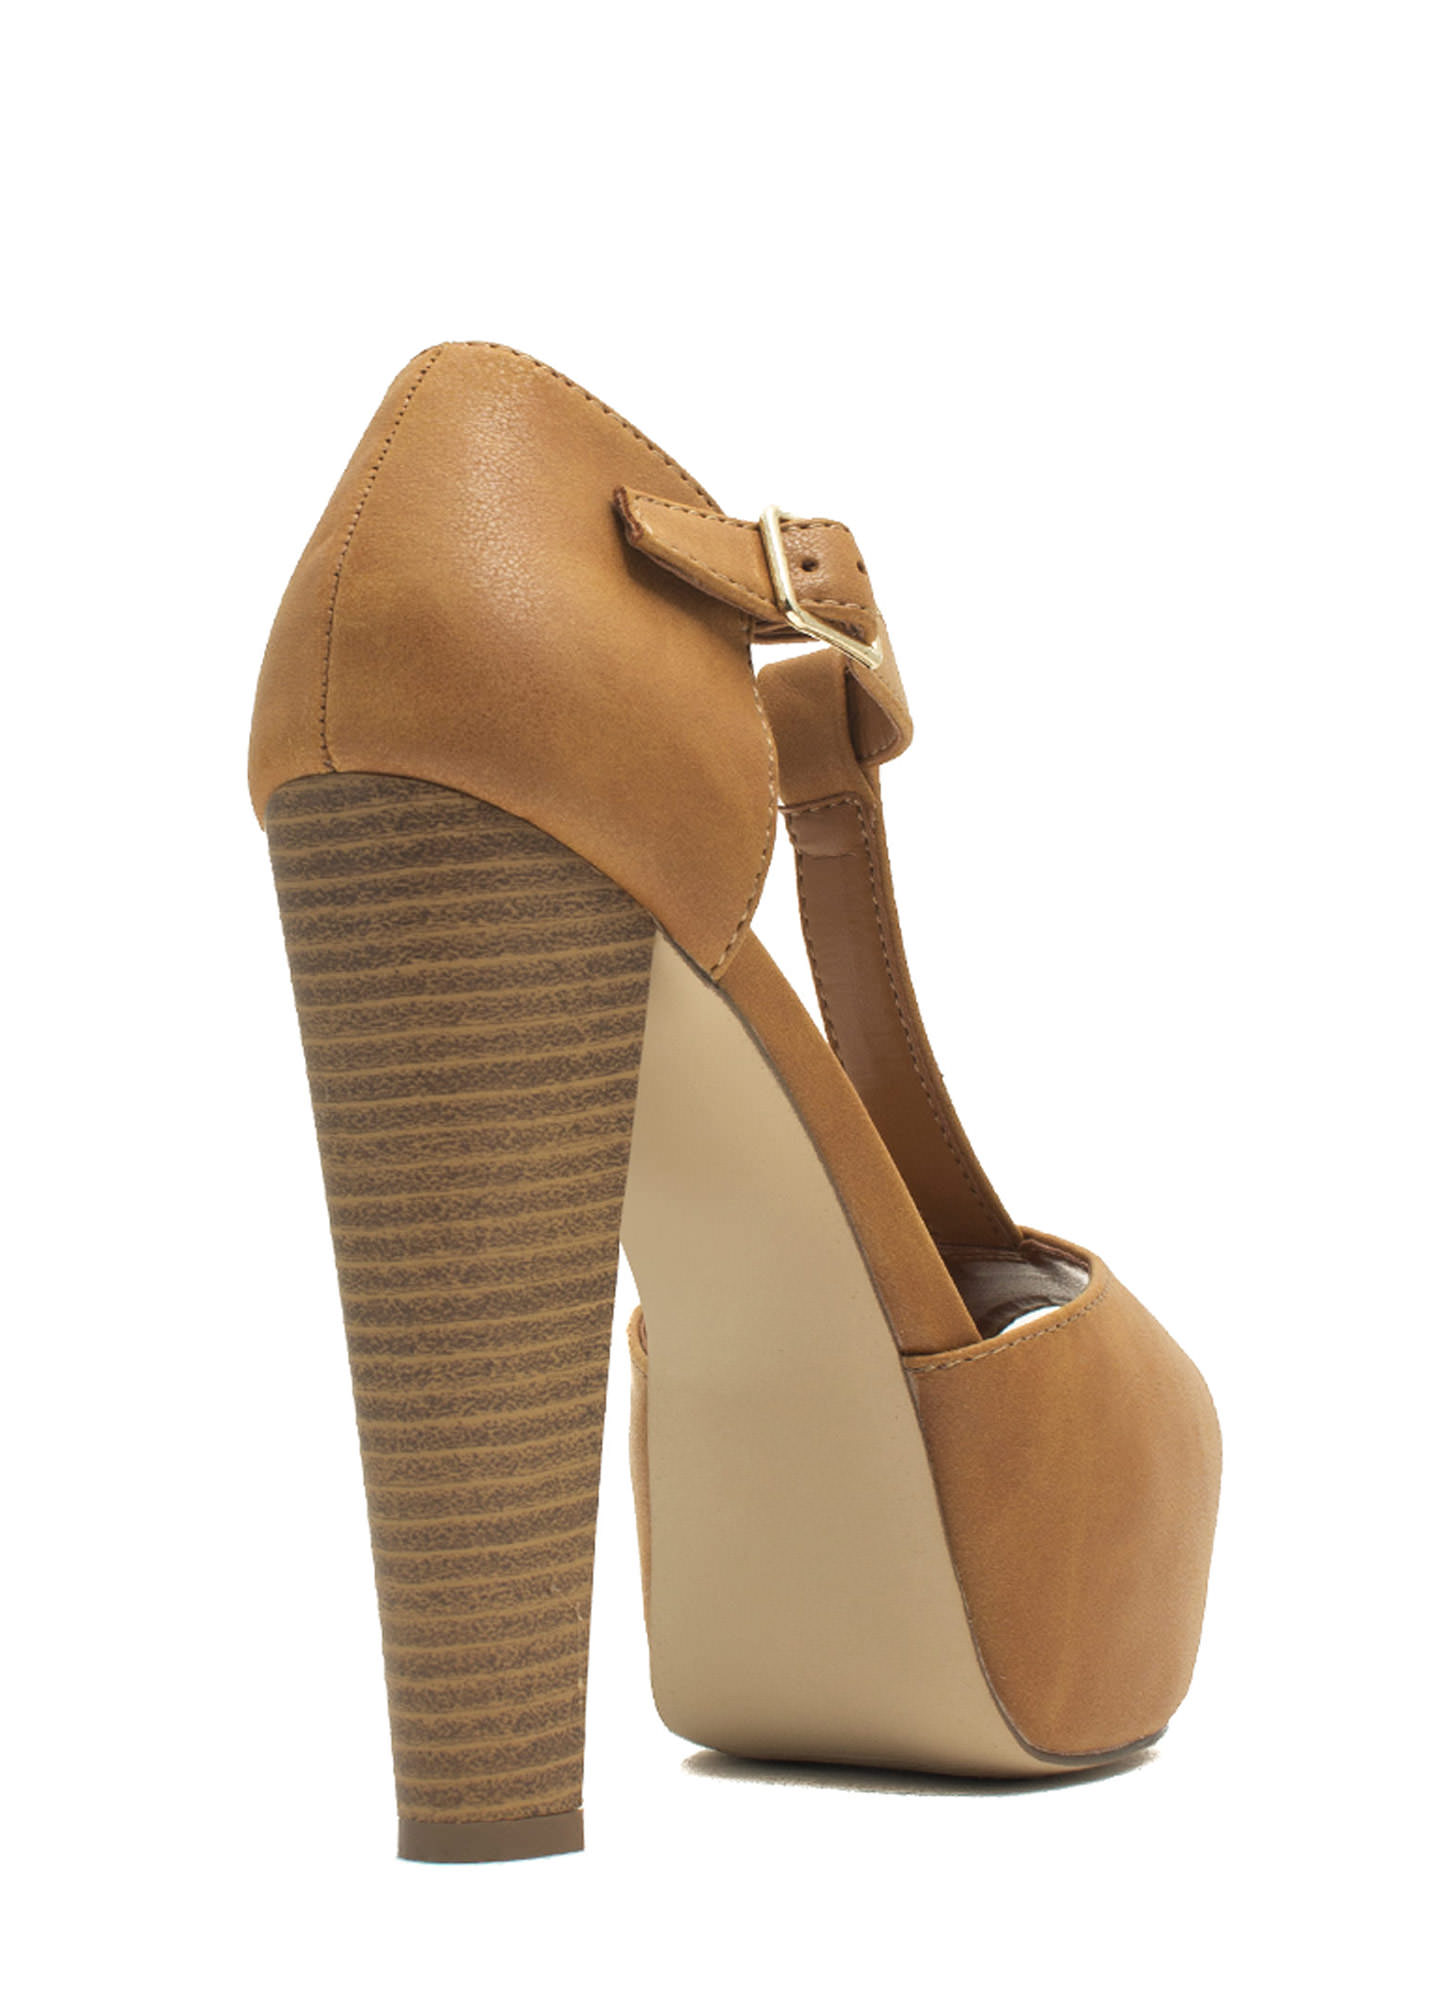 To The T-Strap Chunky Peep-Toe Heels TAN